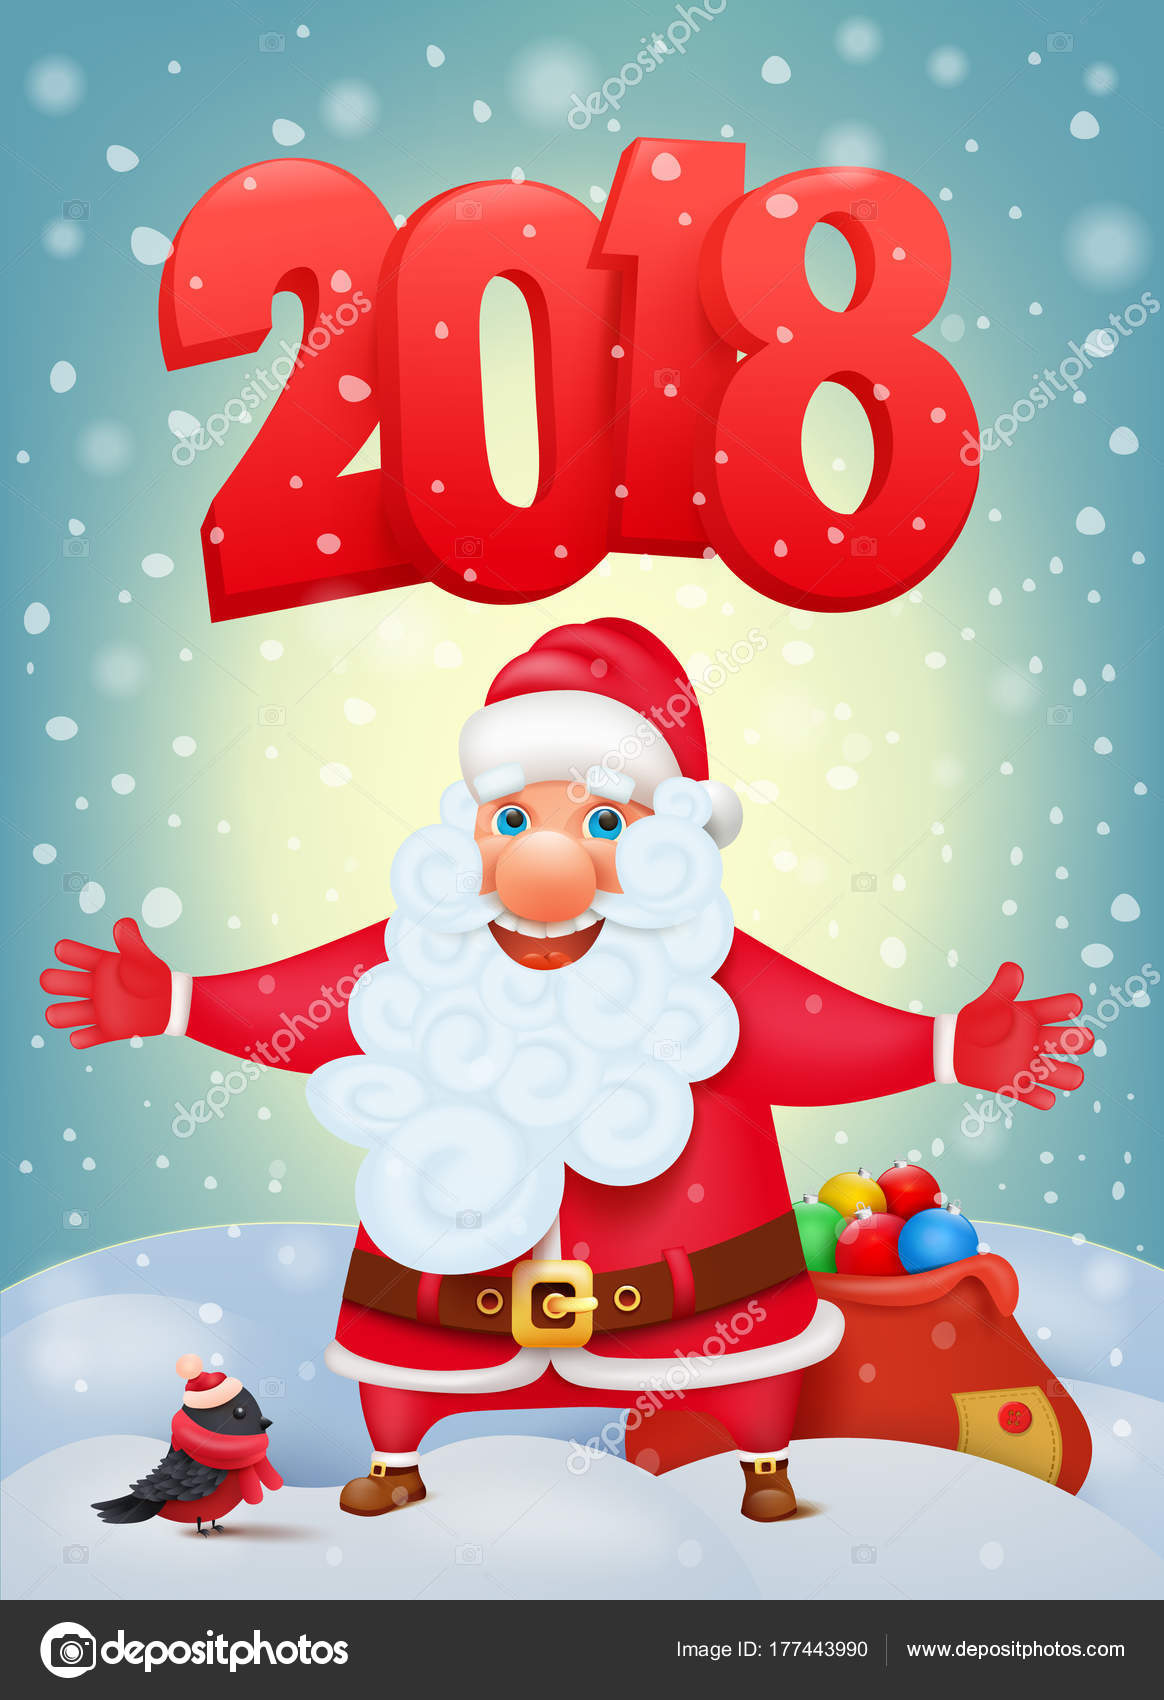 Santa Claus Cartoon Character New Year Invitation Card Template